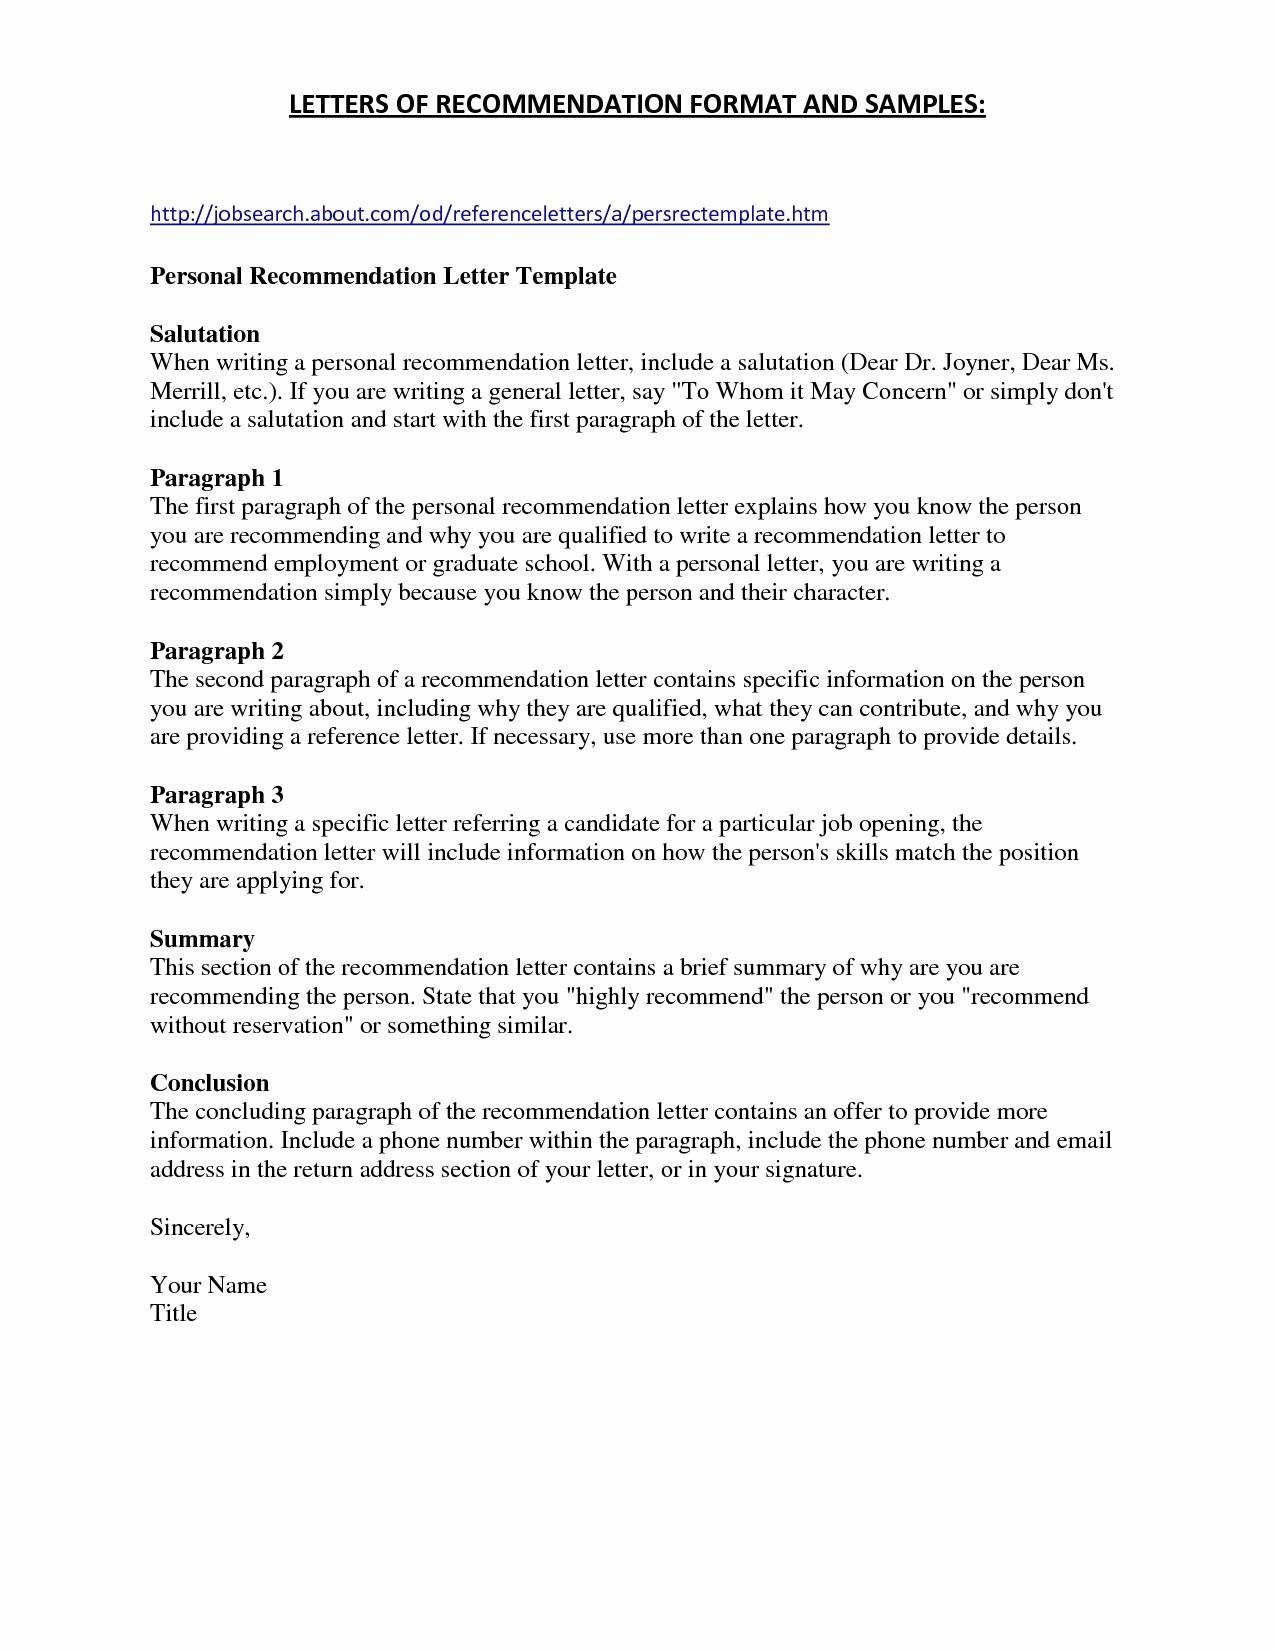 Hostile Work Environment Complaint Letter Template - Free formal Grievance Letter Template Uk Writing format Examples